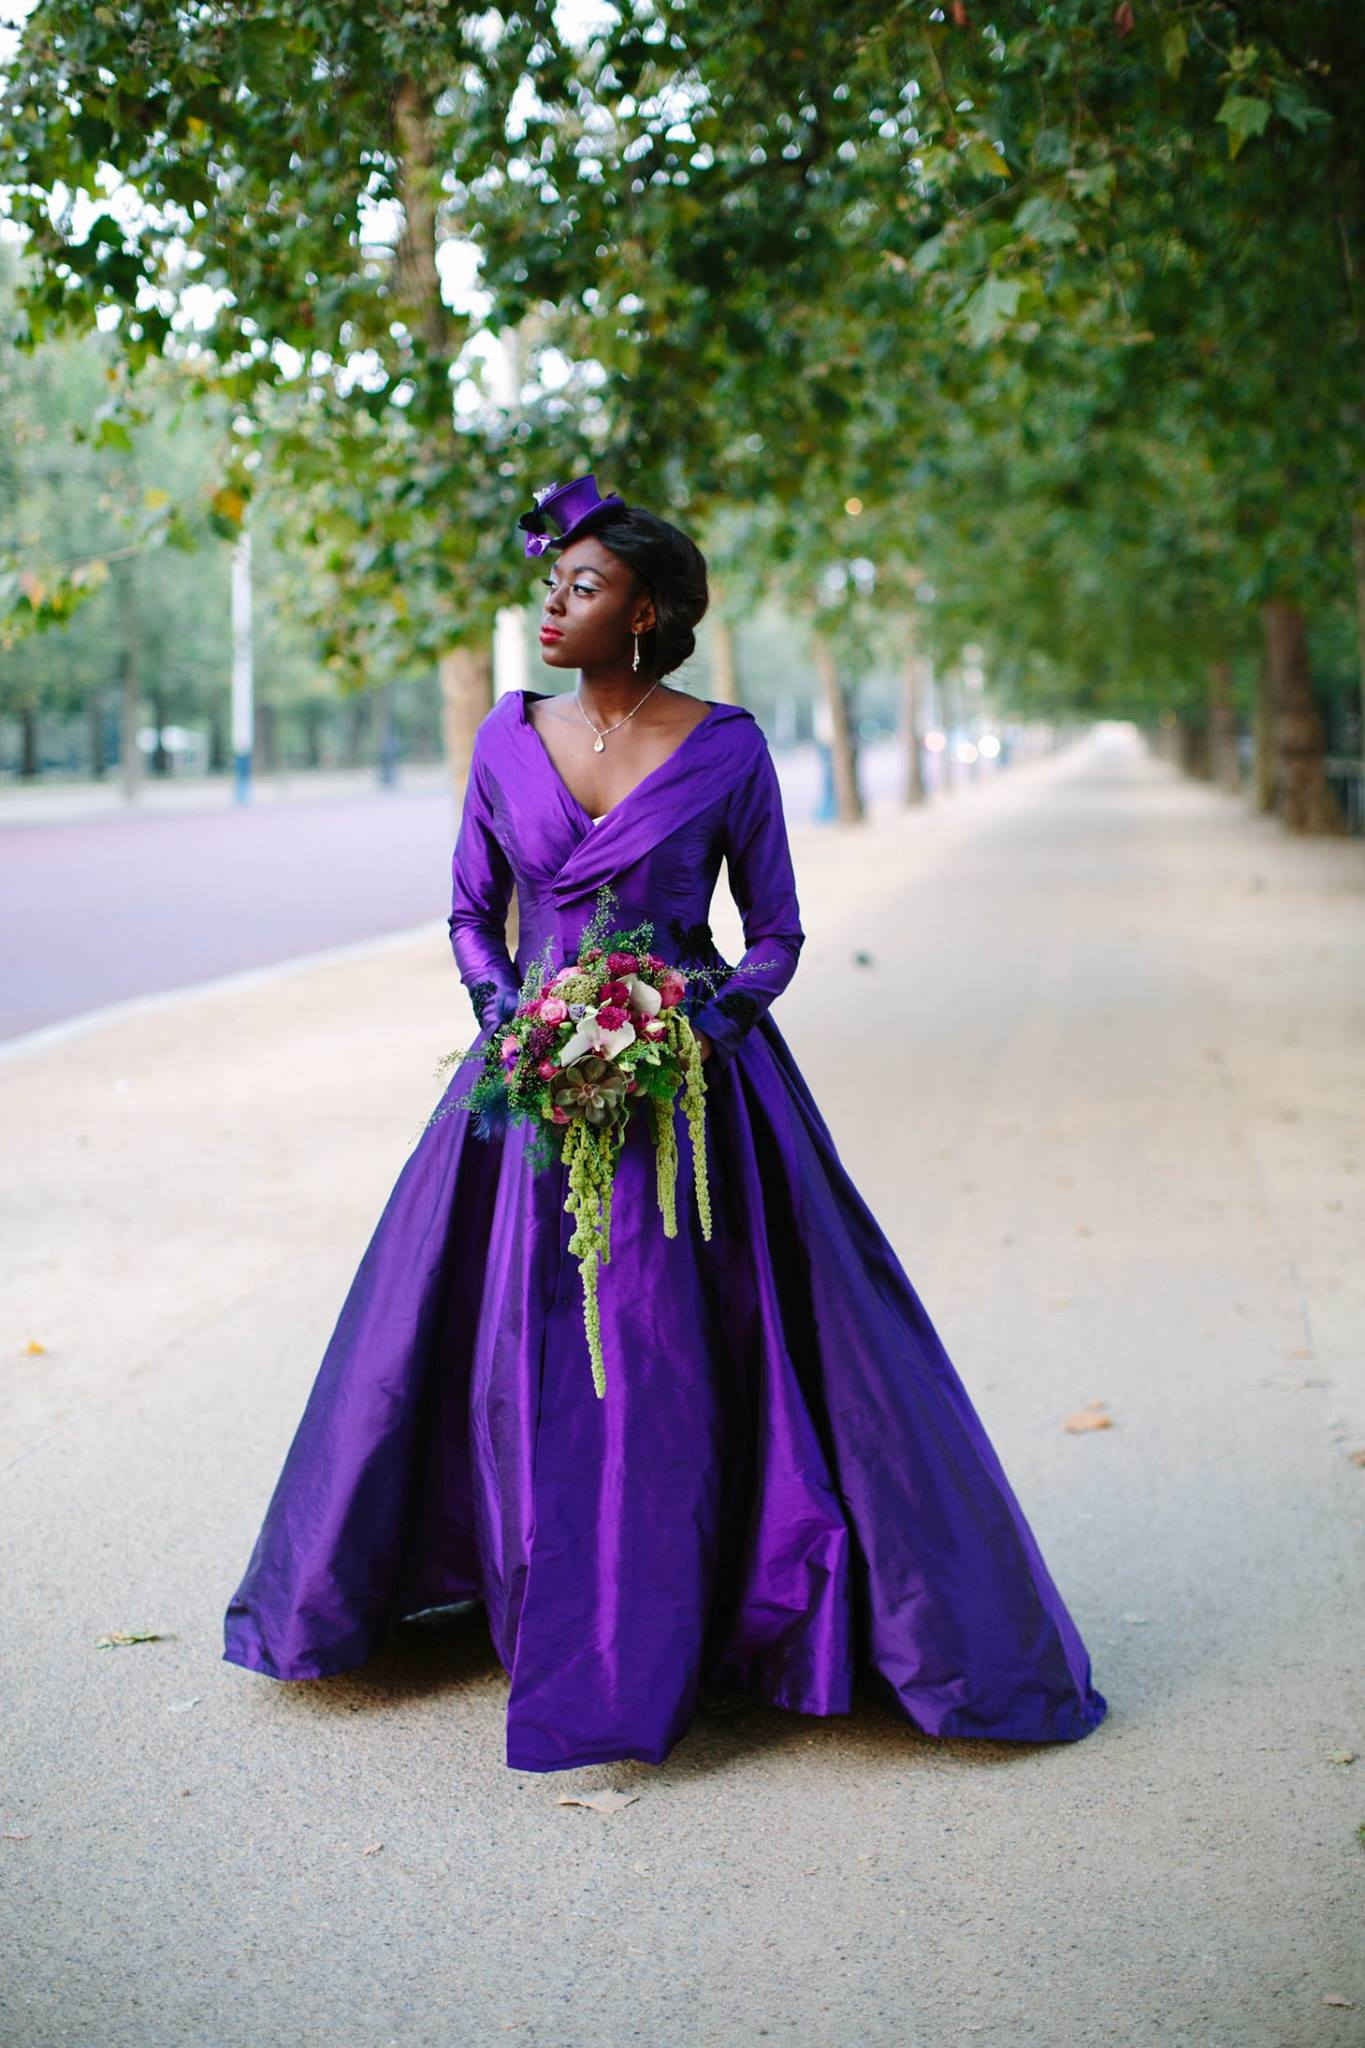 purple wedding dress- bold wedding dress- coloured wedding dresses - unconventional wedding - alternative wedding dresses - unique wedding dresses